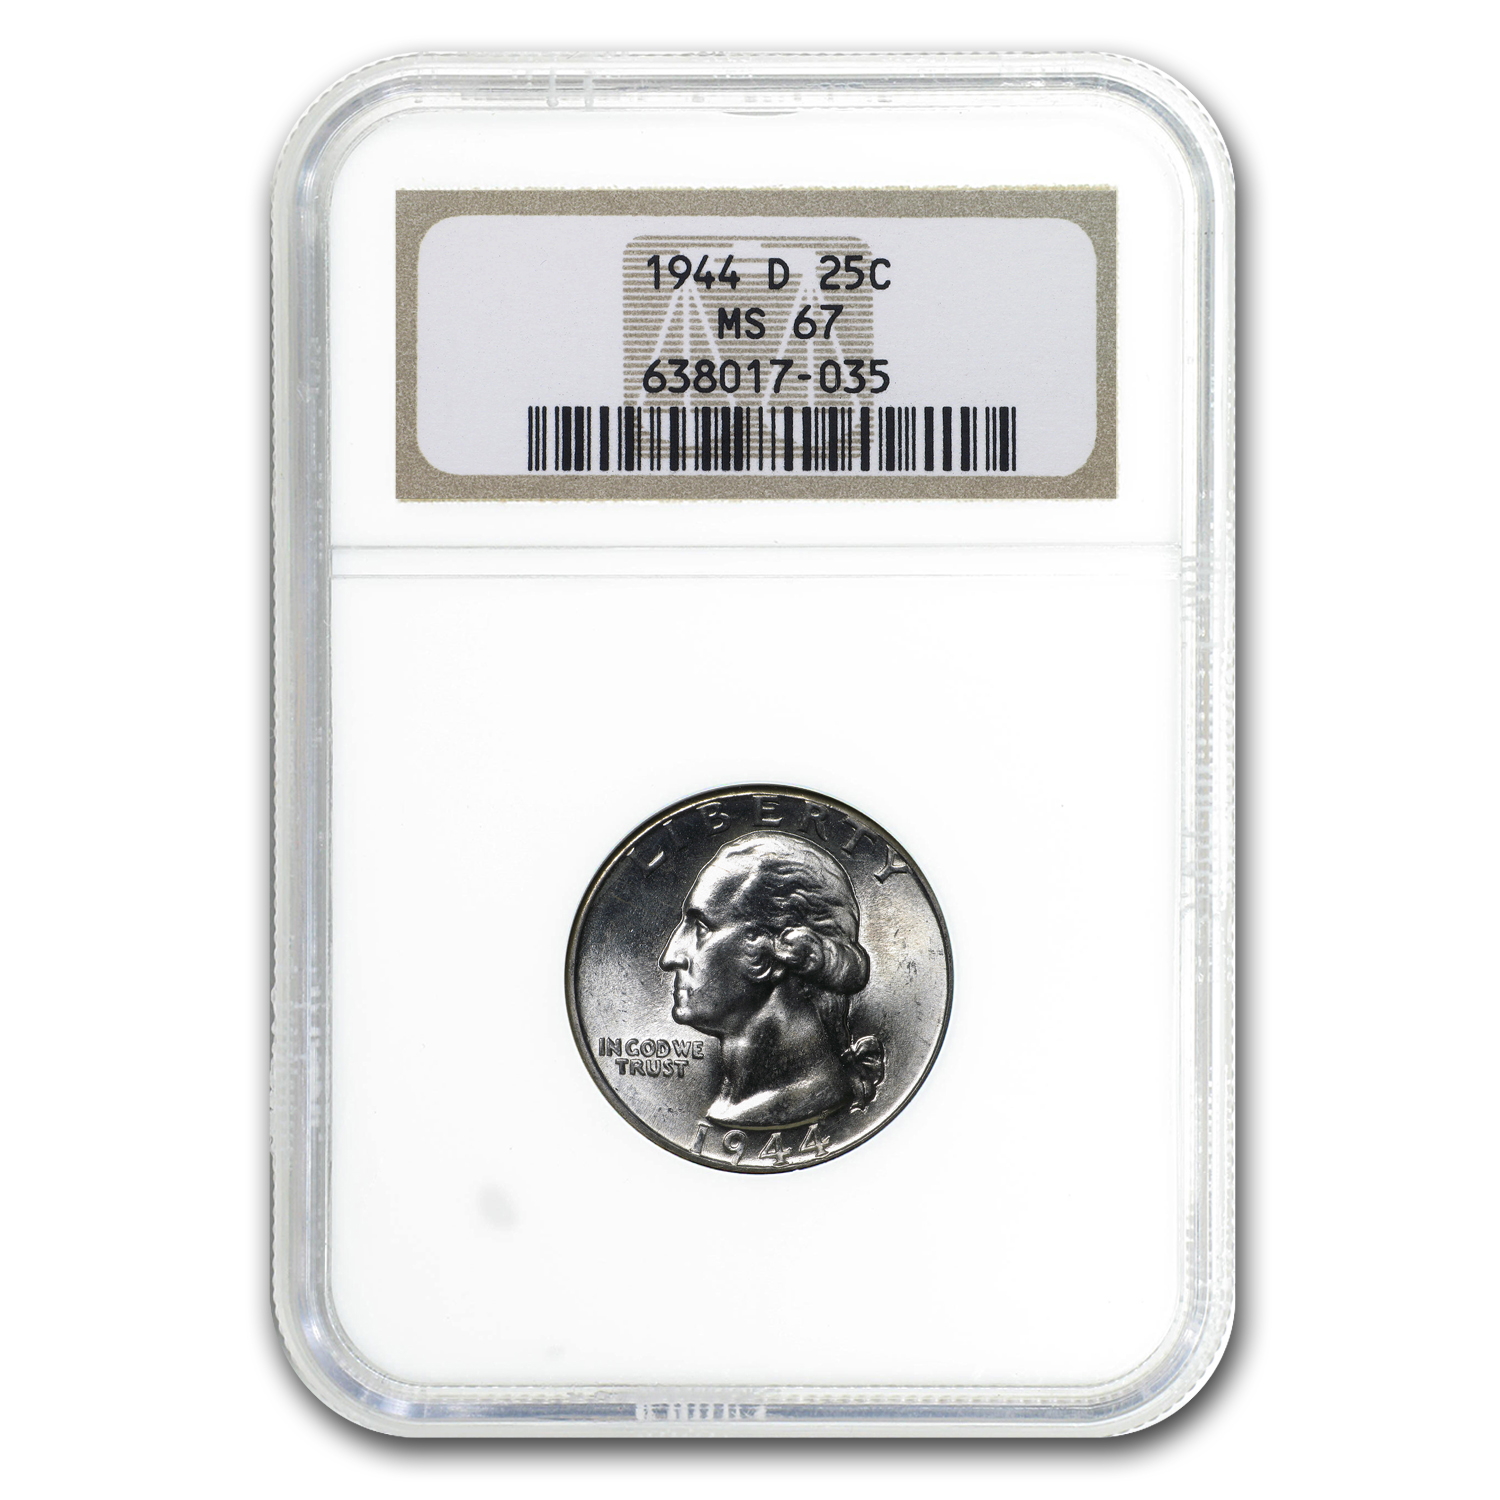 1944-D Washington Quarter MS-67 NGC